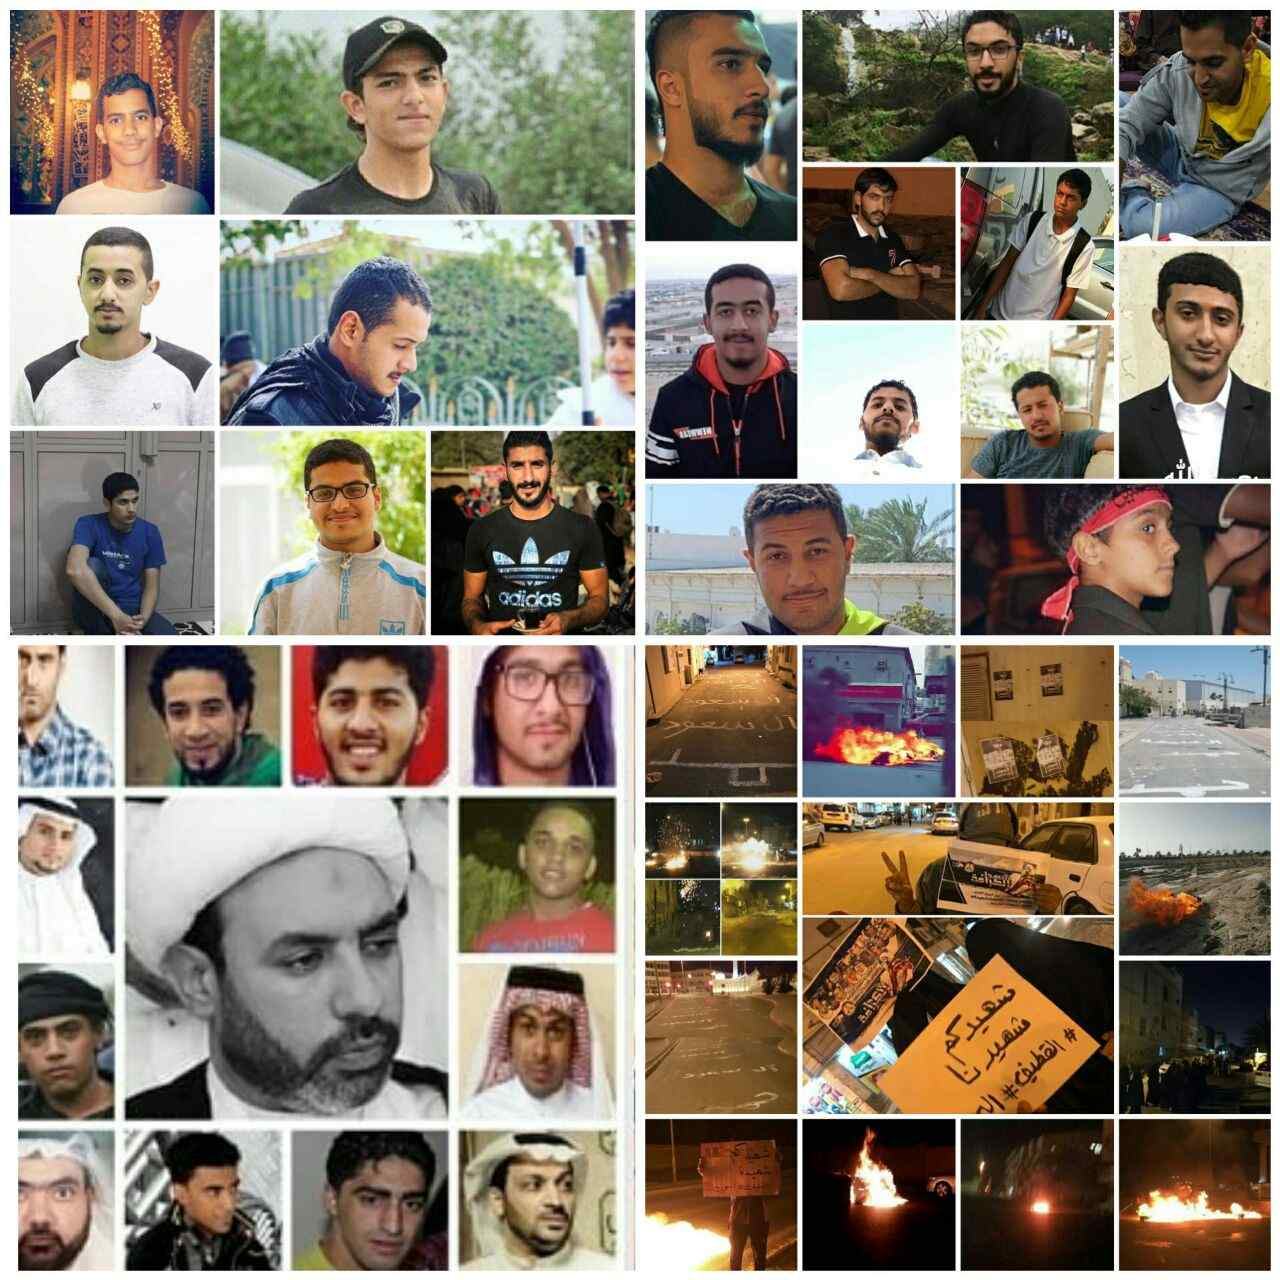 Raids Monitoring Network in its statistics for the fourth week of April: 19 detainees and an angry movement for the martyrs of dignity